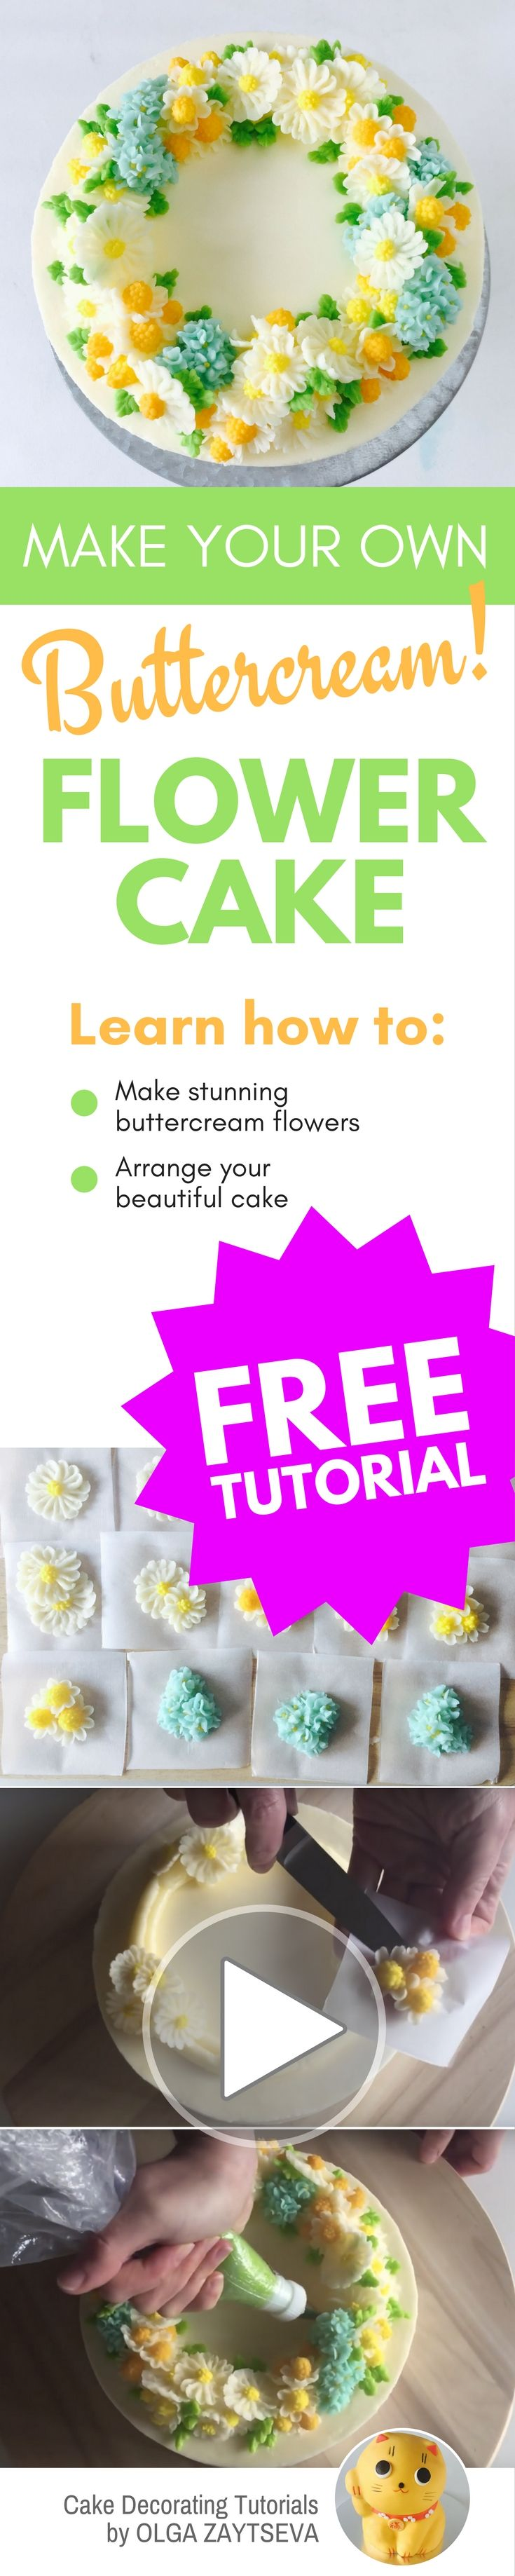 How to make Buttercream Camomile Flower Wreath cake - Cake decorating tutorial by Olga Zaytseva. Learn how to pipe tiny camomiles and hydrangeas and assemble a buttercream flower wreath cake. #cakedecorating #cakedecoratingtutorial #buttercreamflowercake #buttercreamflowers